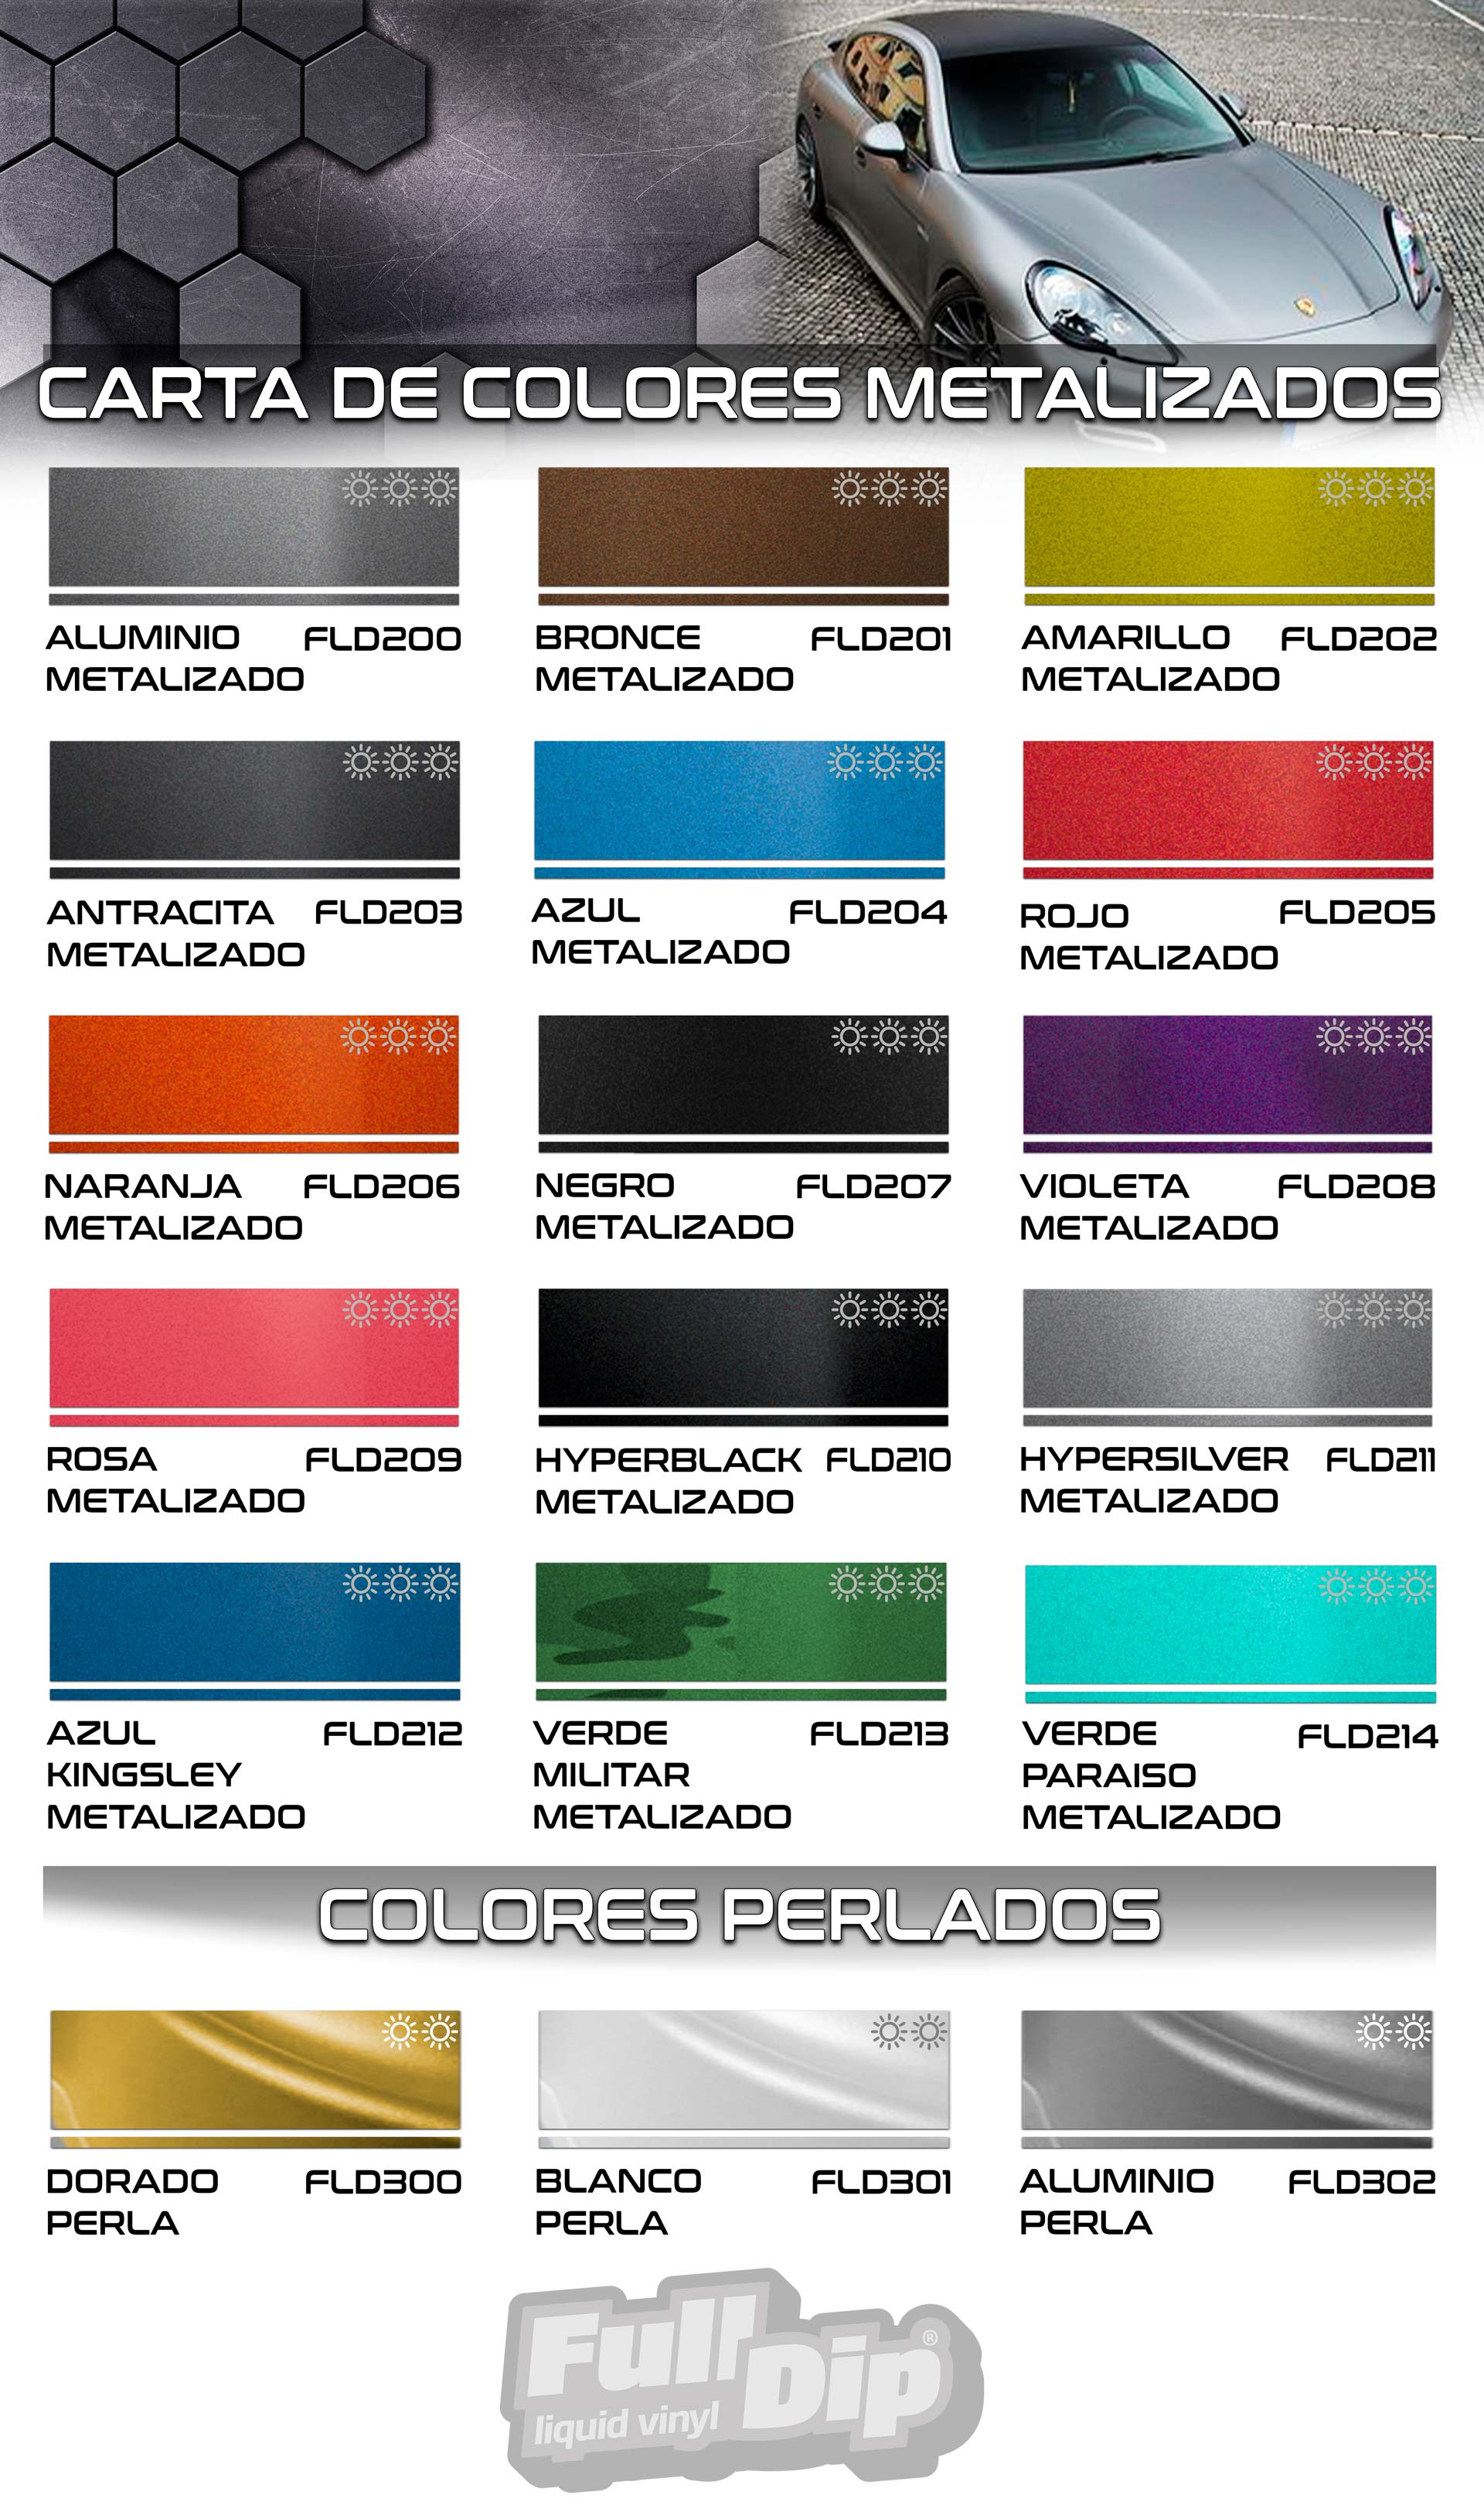 CARTA-COLORES-METALIZADOS-FULLDIP-WEB-20